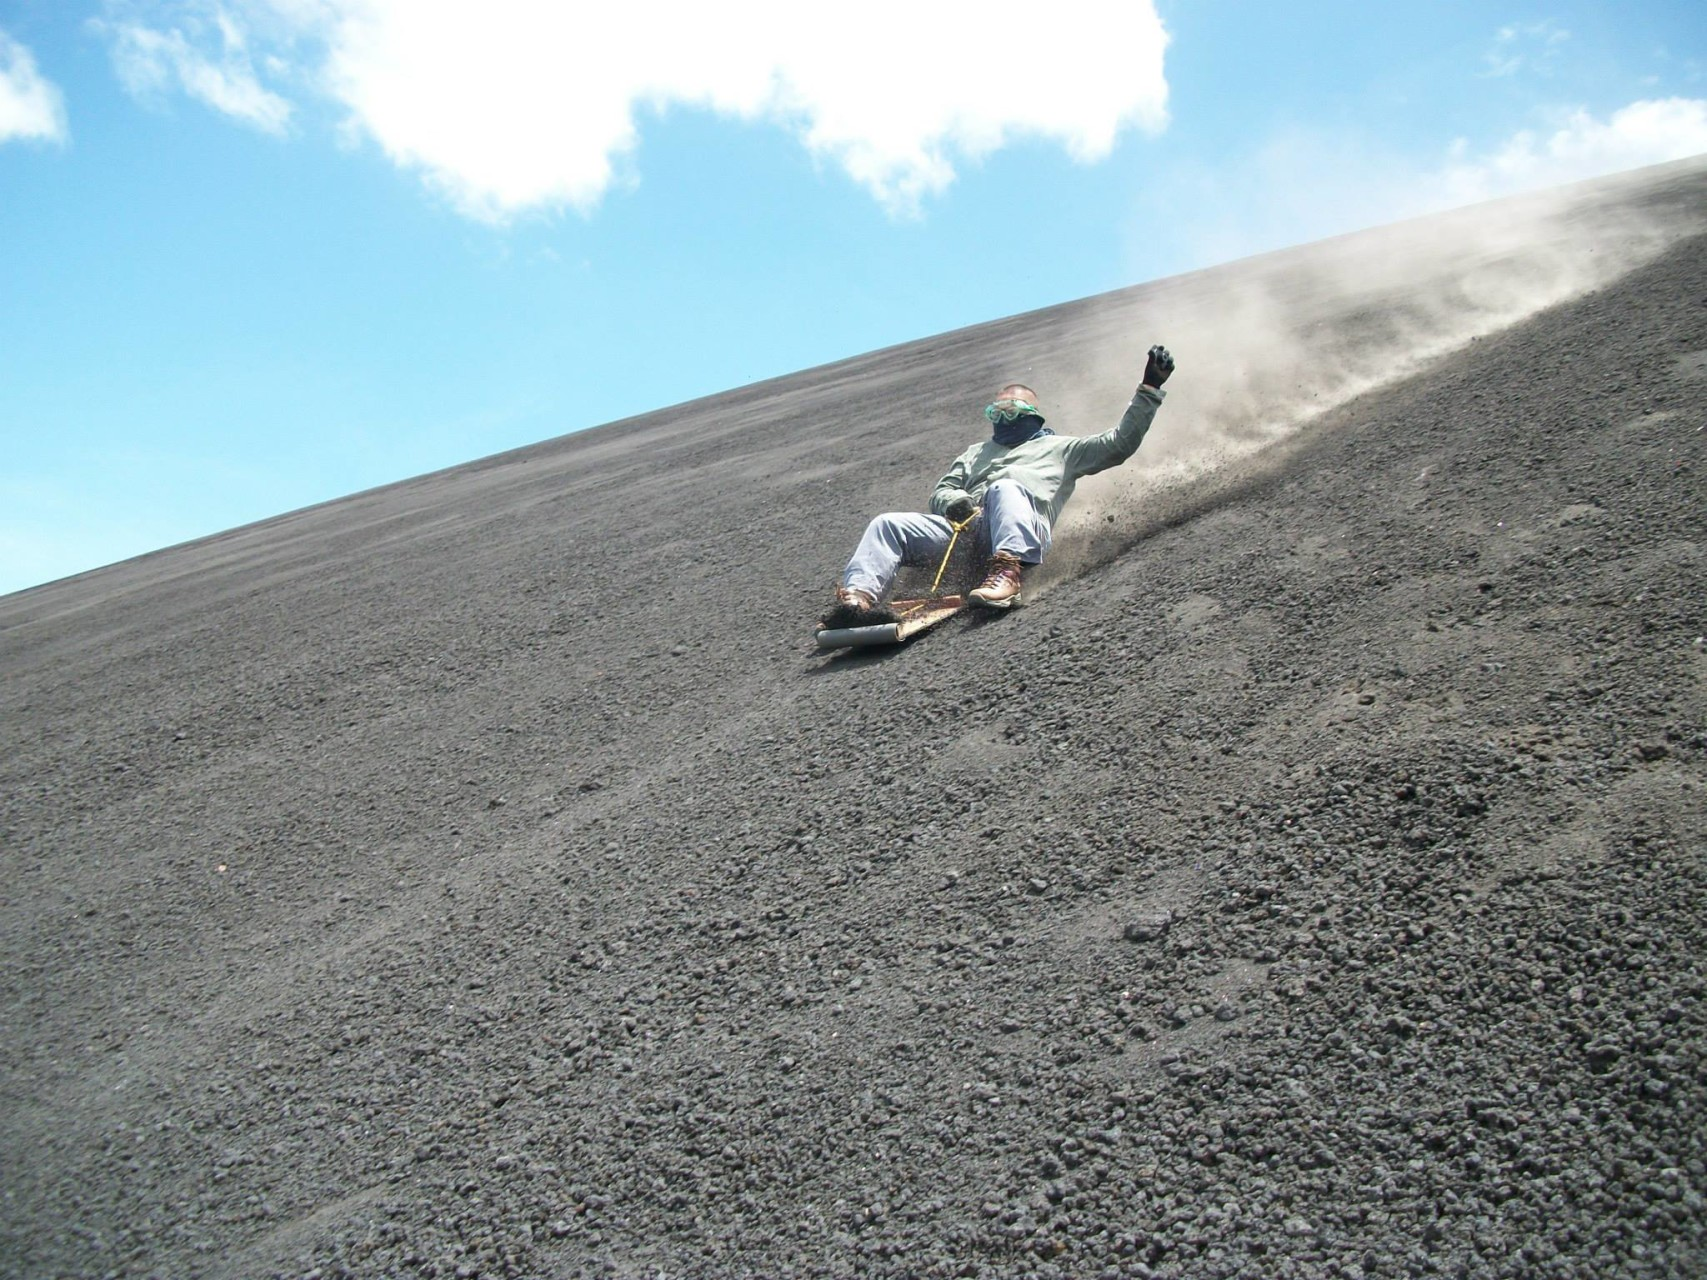 Sand boarding down an active volcano.